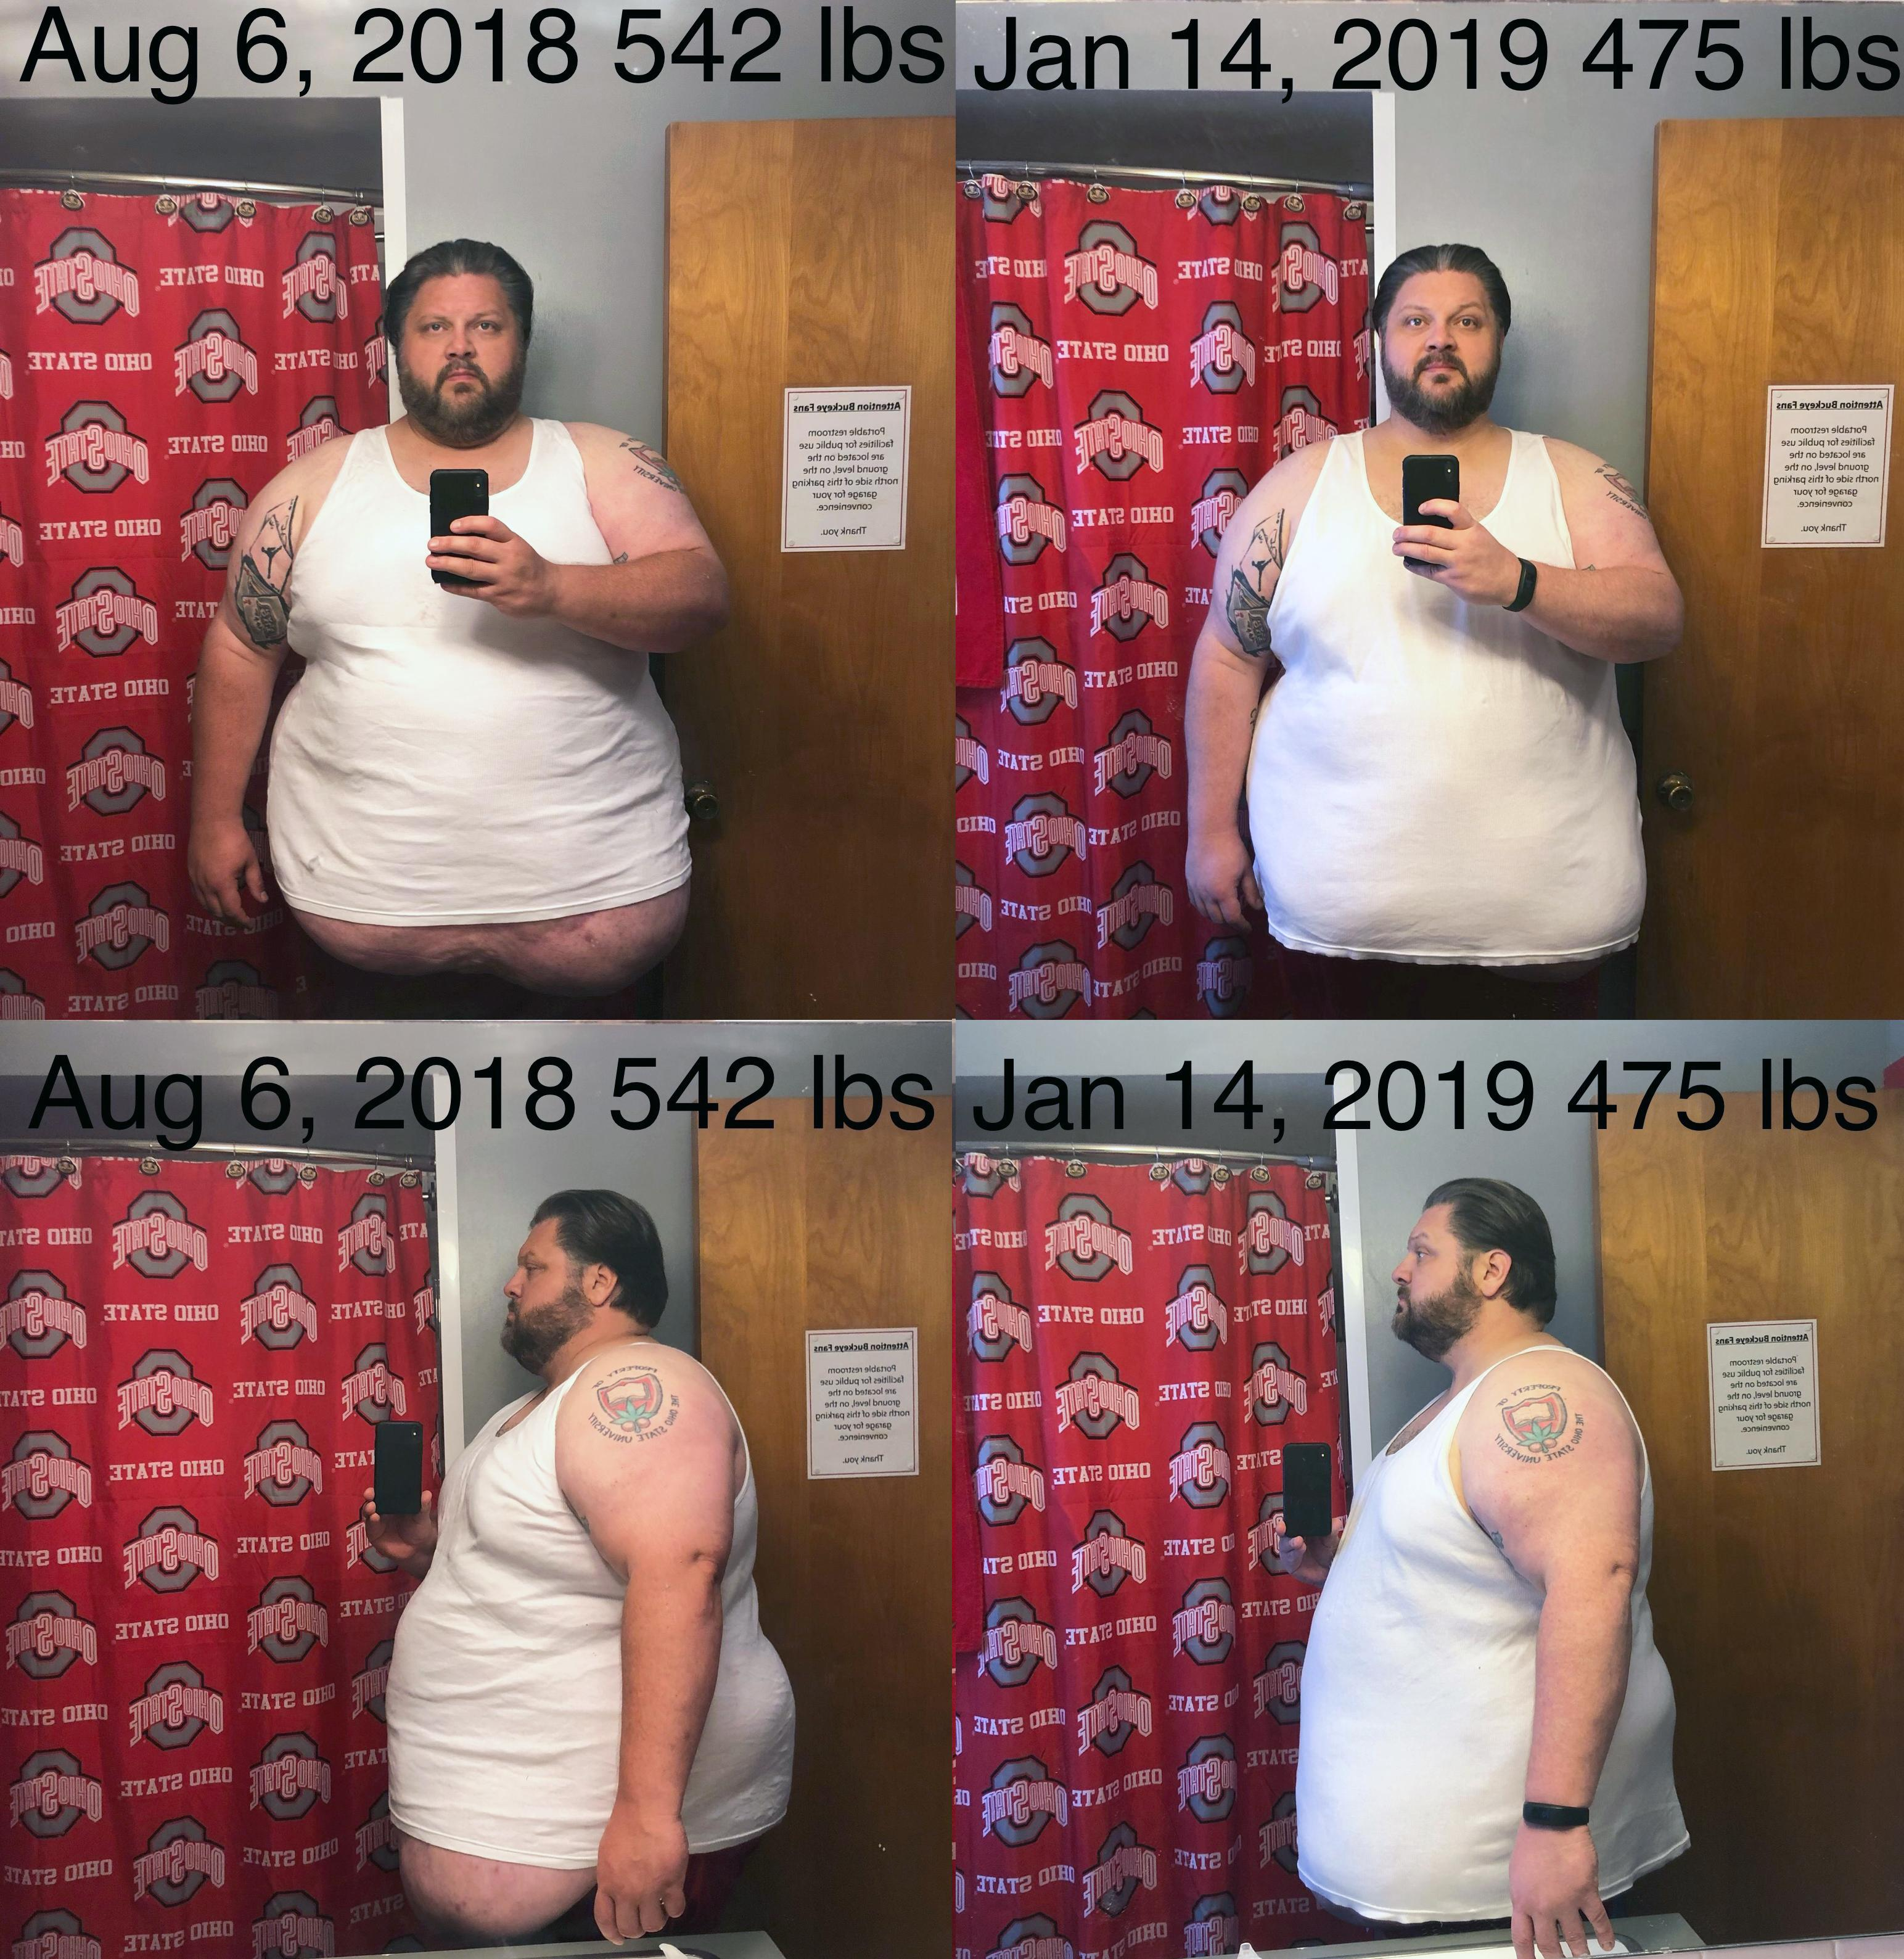 67 lbs Fat Loss Before and After 6 foot 1 Male 542 lbs to 475 lbs